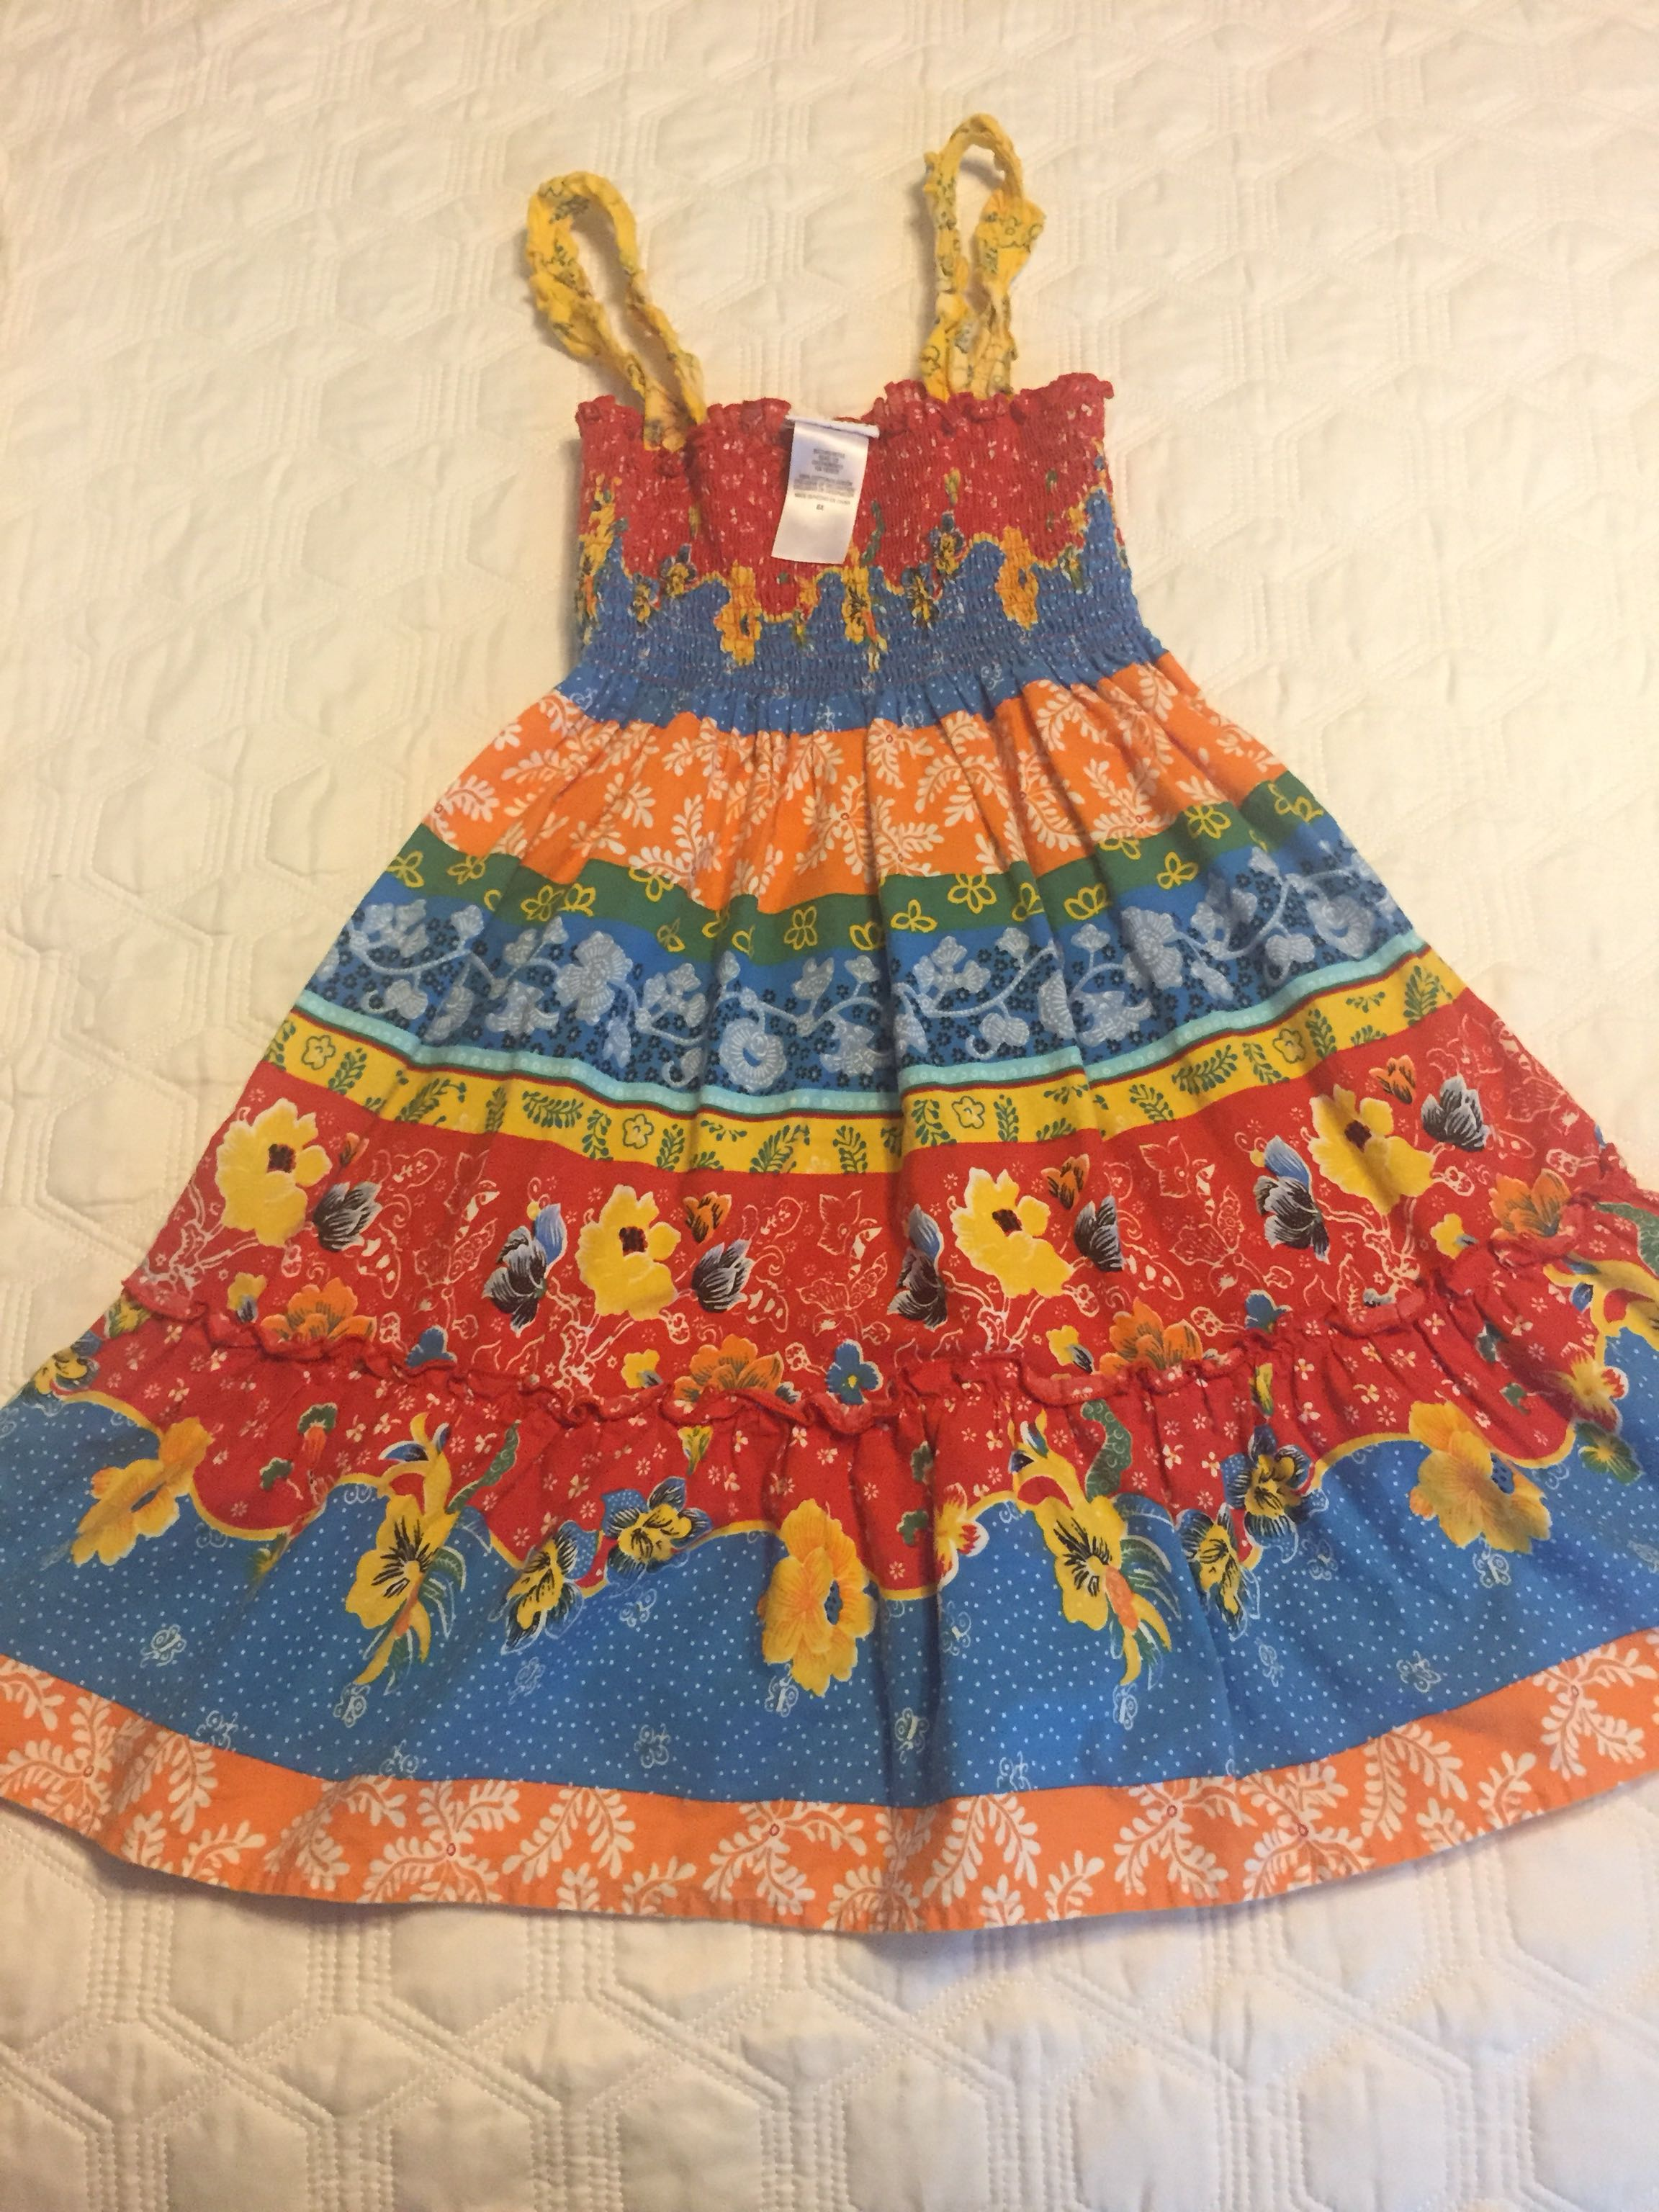 $4 Size 6x Vibrant Summer Dress in EUC. Only worn a few times.